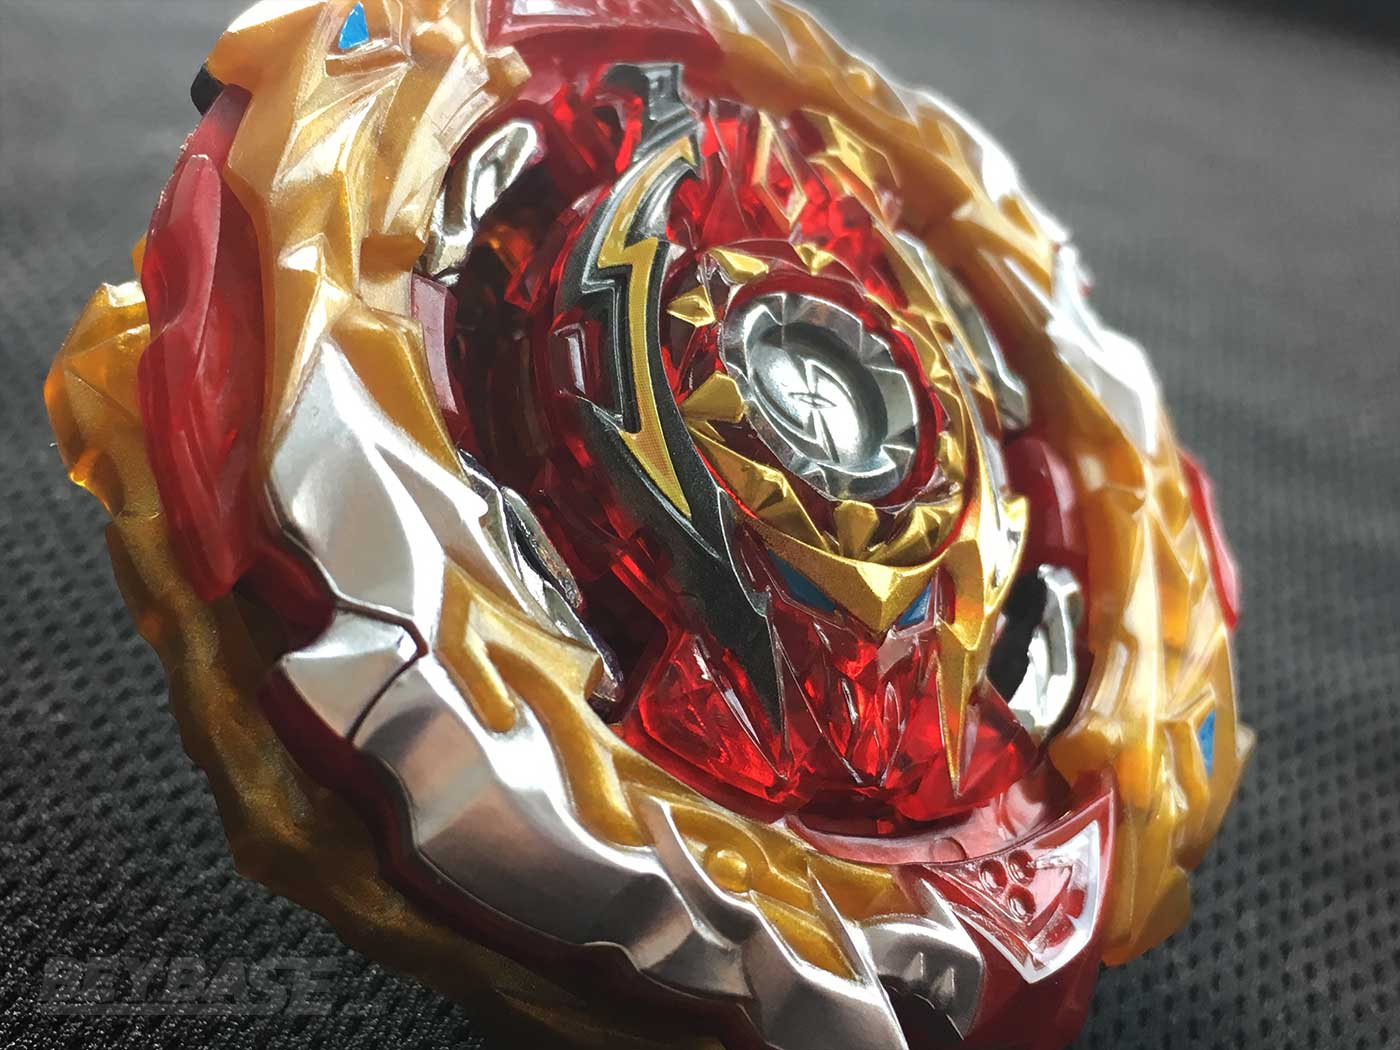 detail of world spriggan unite dash 2b beyblade